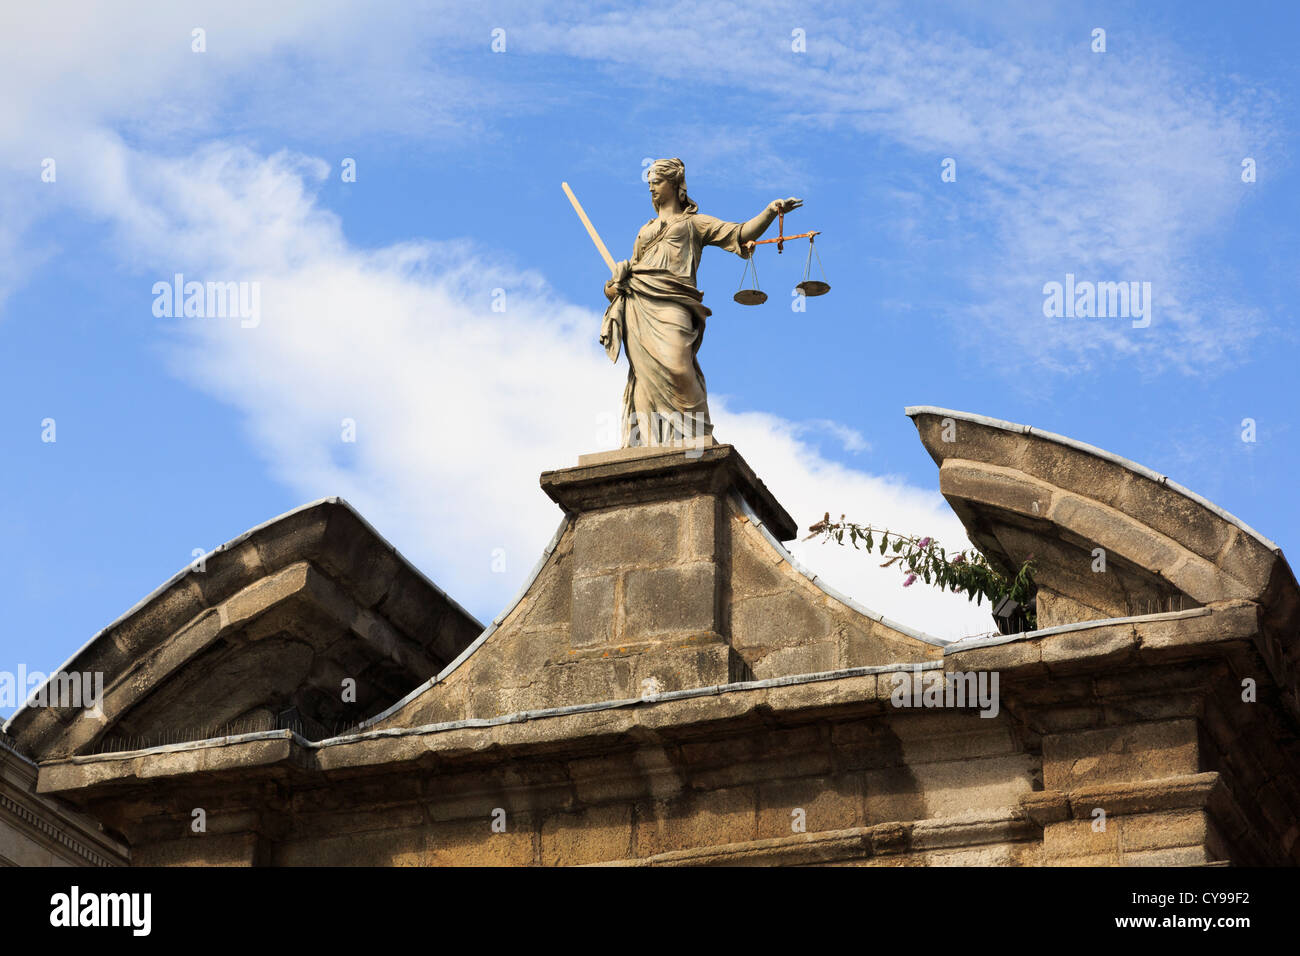 Dublin, Republic of Ireland, Eire. Statue of Lady Justice holding scales above an entrance gate in Dublin castle Stock Photo